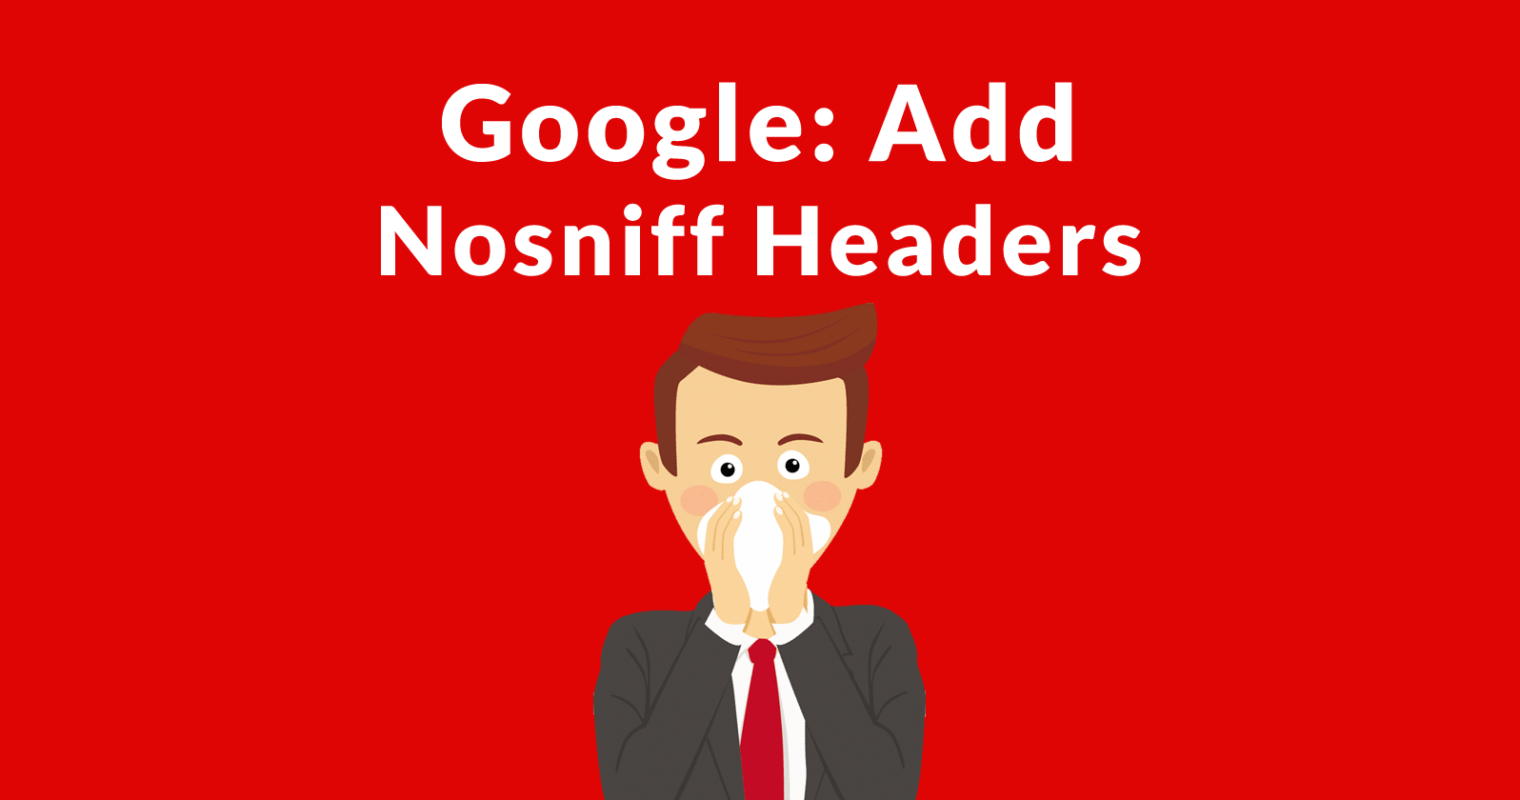 Google Asks Publishers to Add Nosniff Response Headers